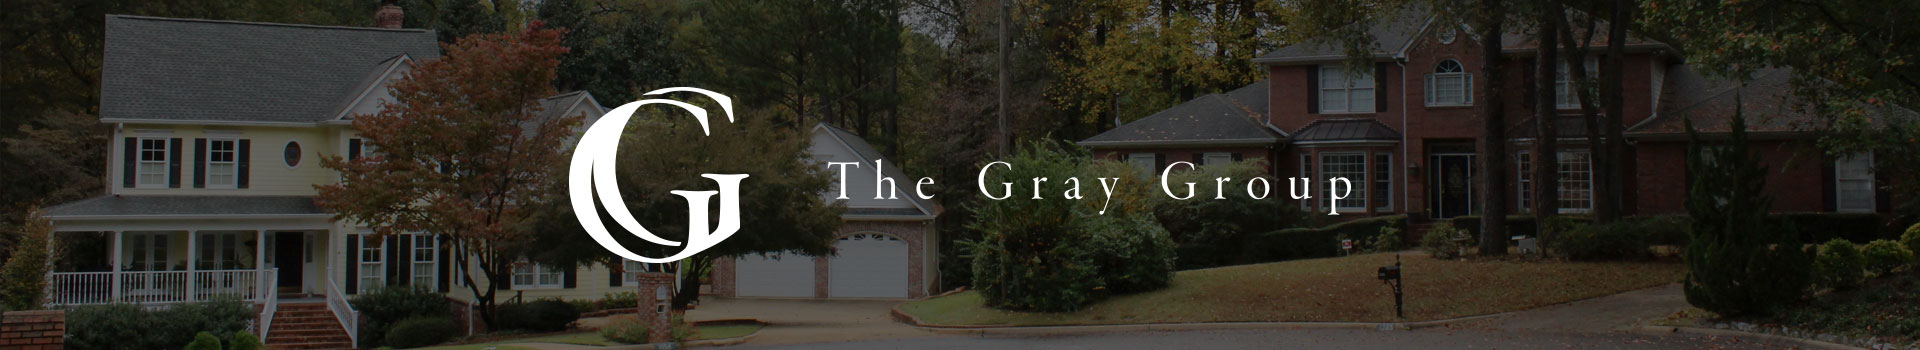 Riverchase - The Gray Group